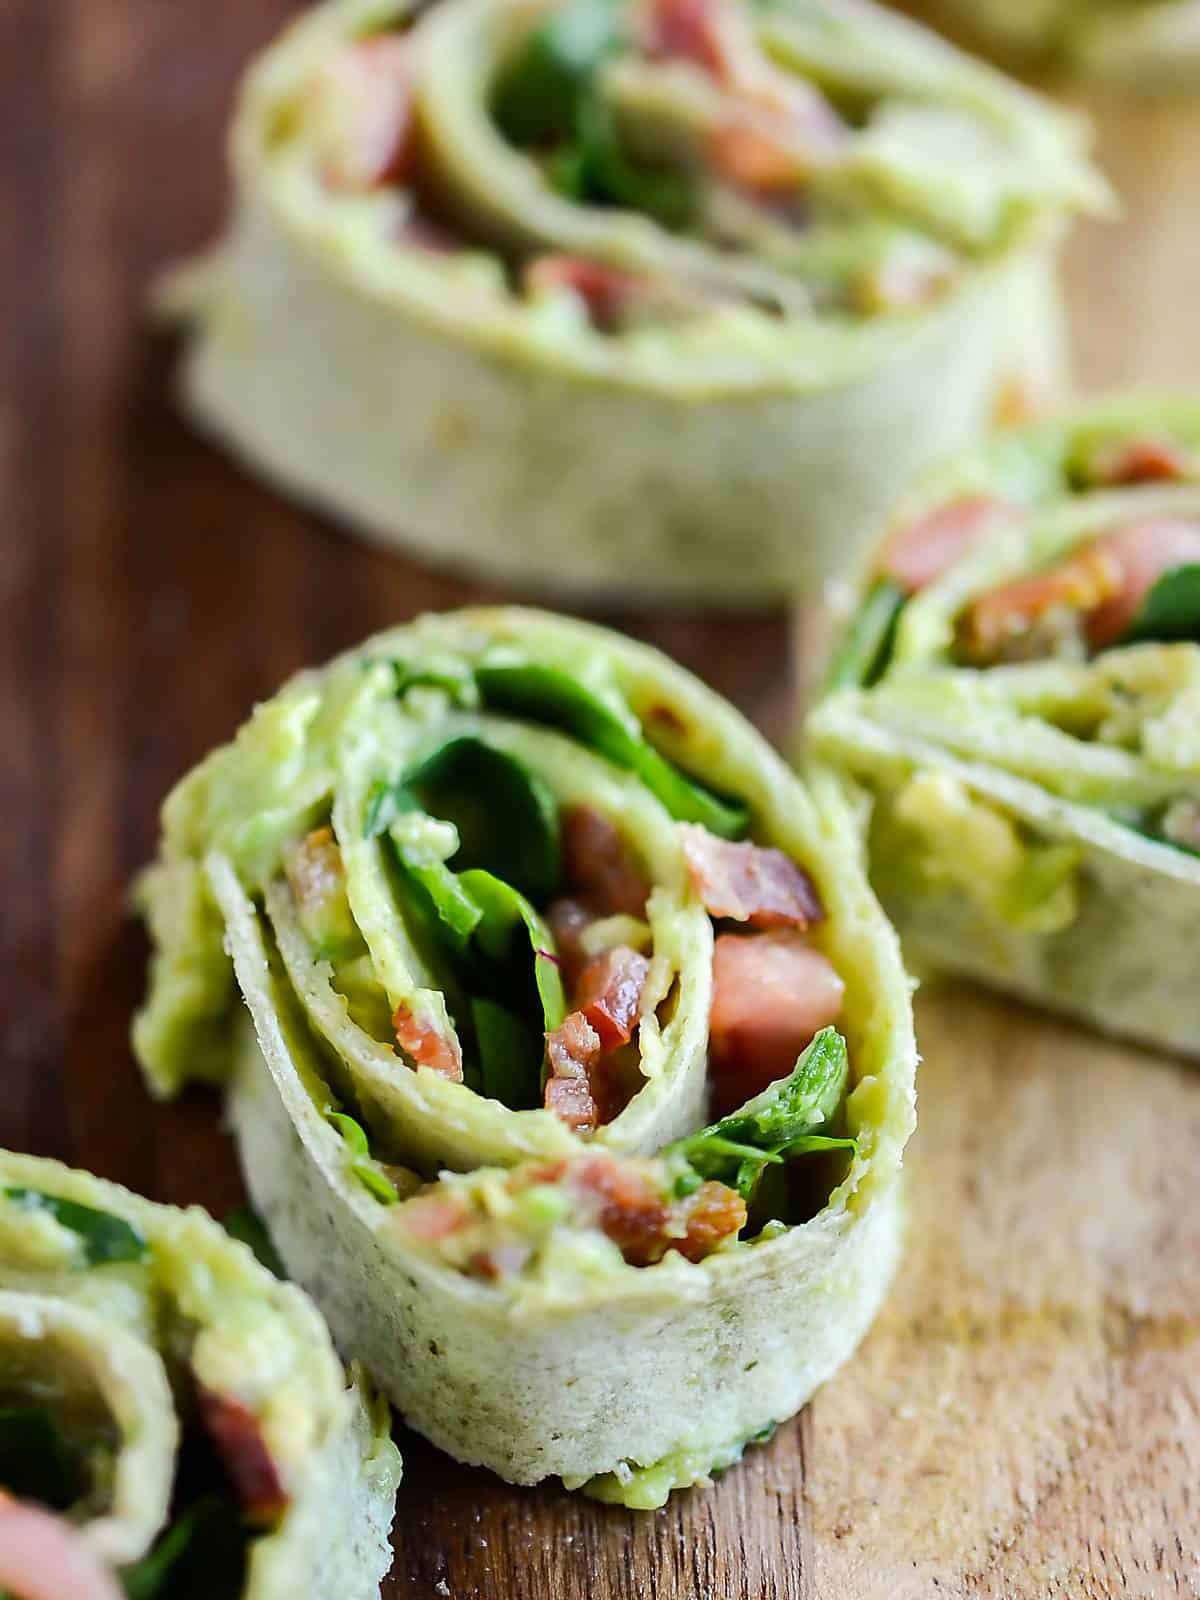 Avocado BLT wrap sliced into pinwheels